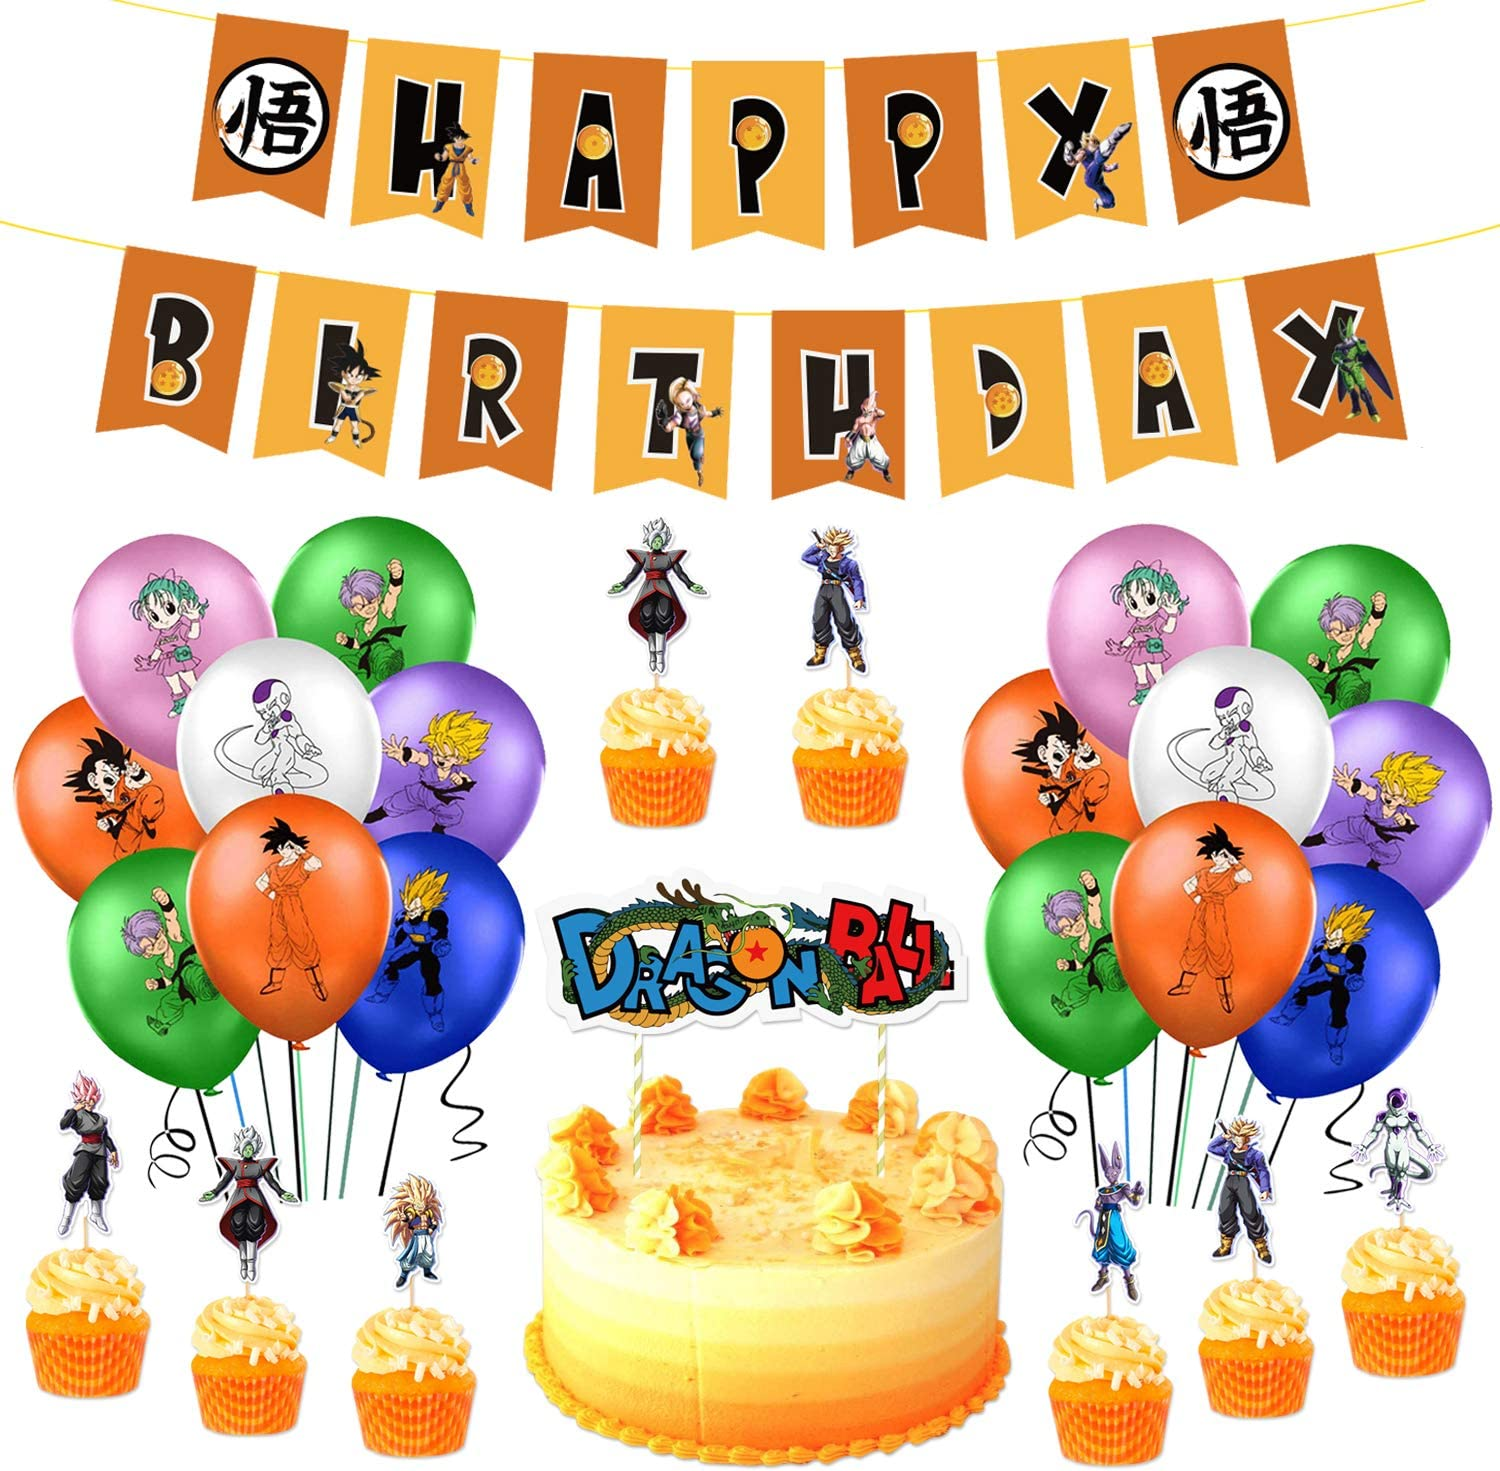 Amazon Com 42 Pcs Dragon Ball Z Birthday Party Decorations Balloon Banner Cake Toppers Set Anime Party Supplies For Kids And Boys Toys Games